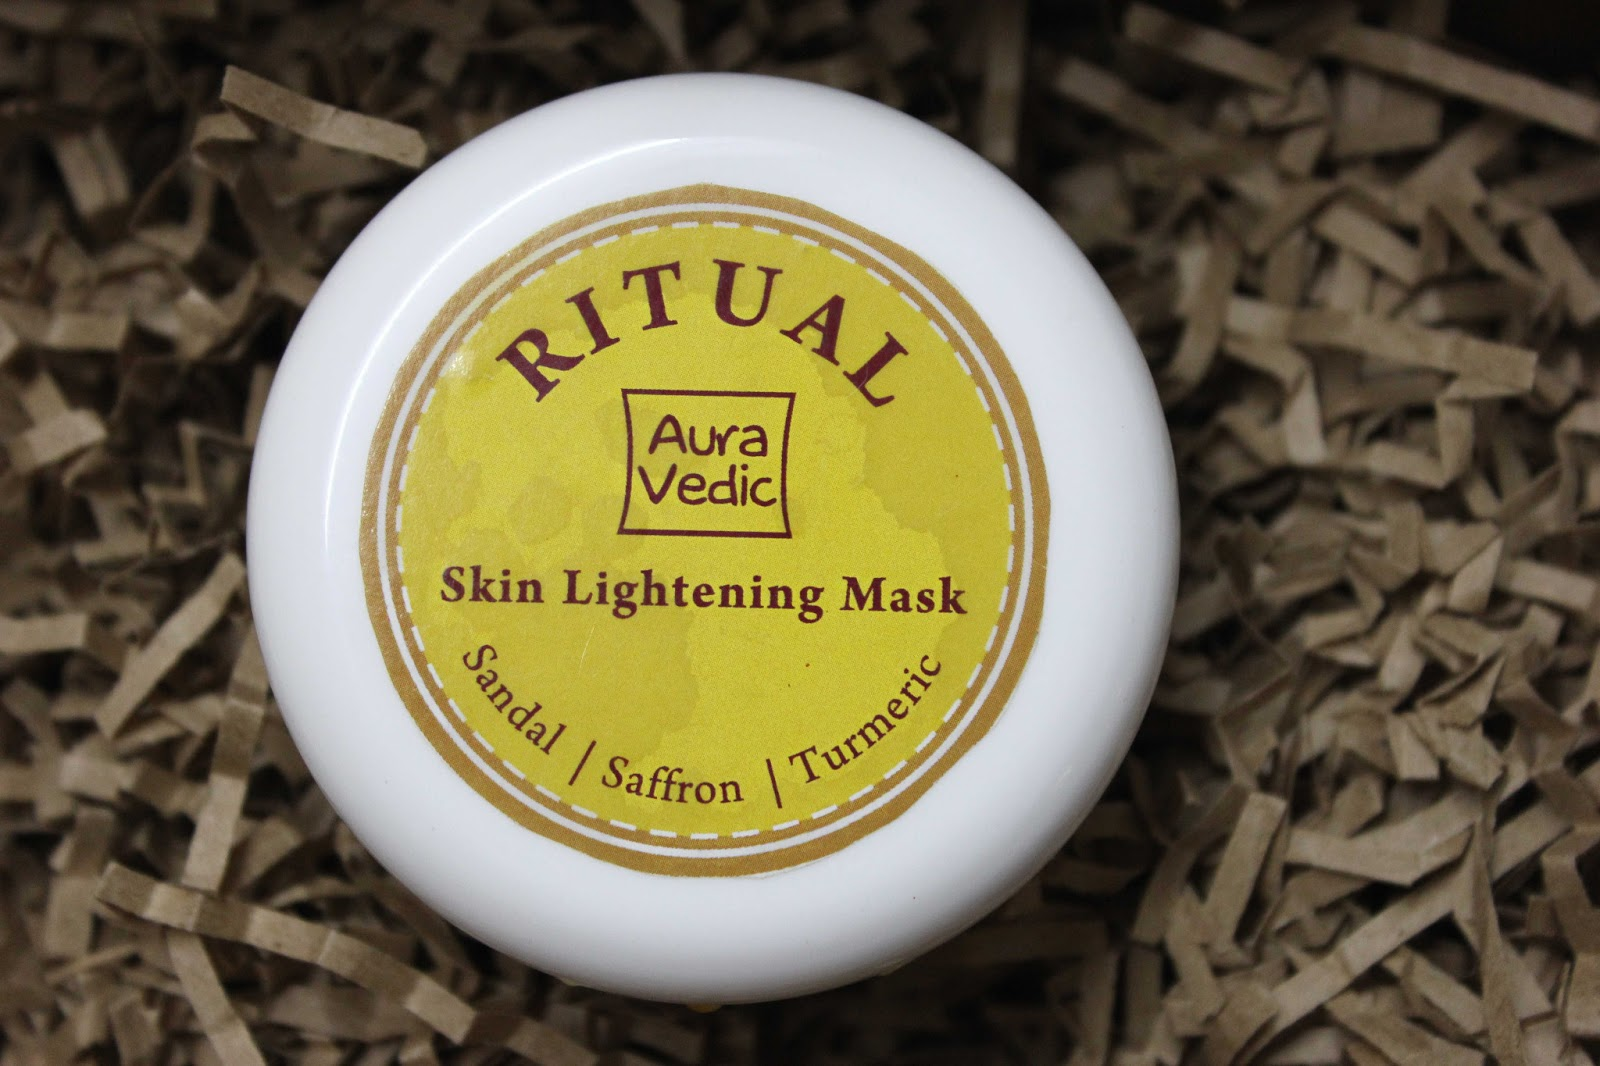 Auravedic Ritual Skin Lightening Mask Product Review at Perfect Skin Care for you